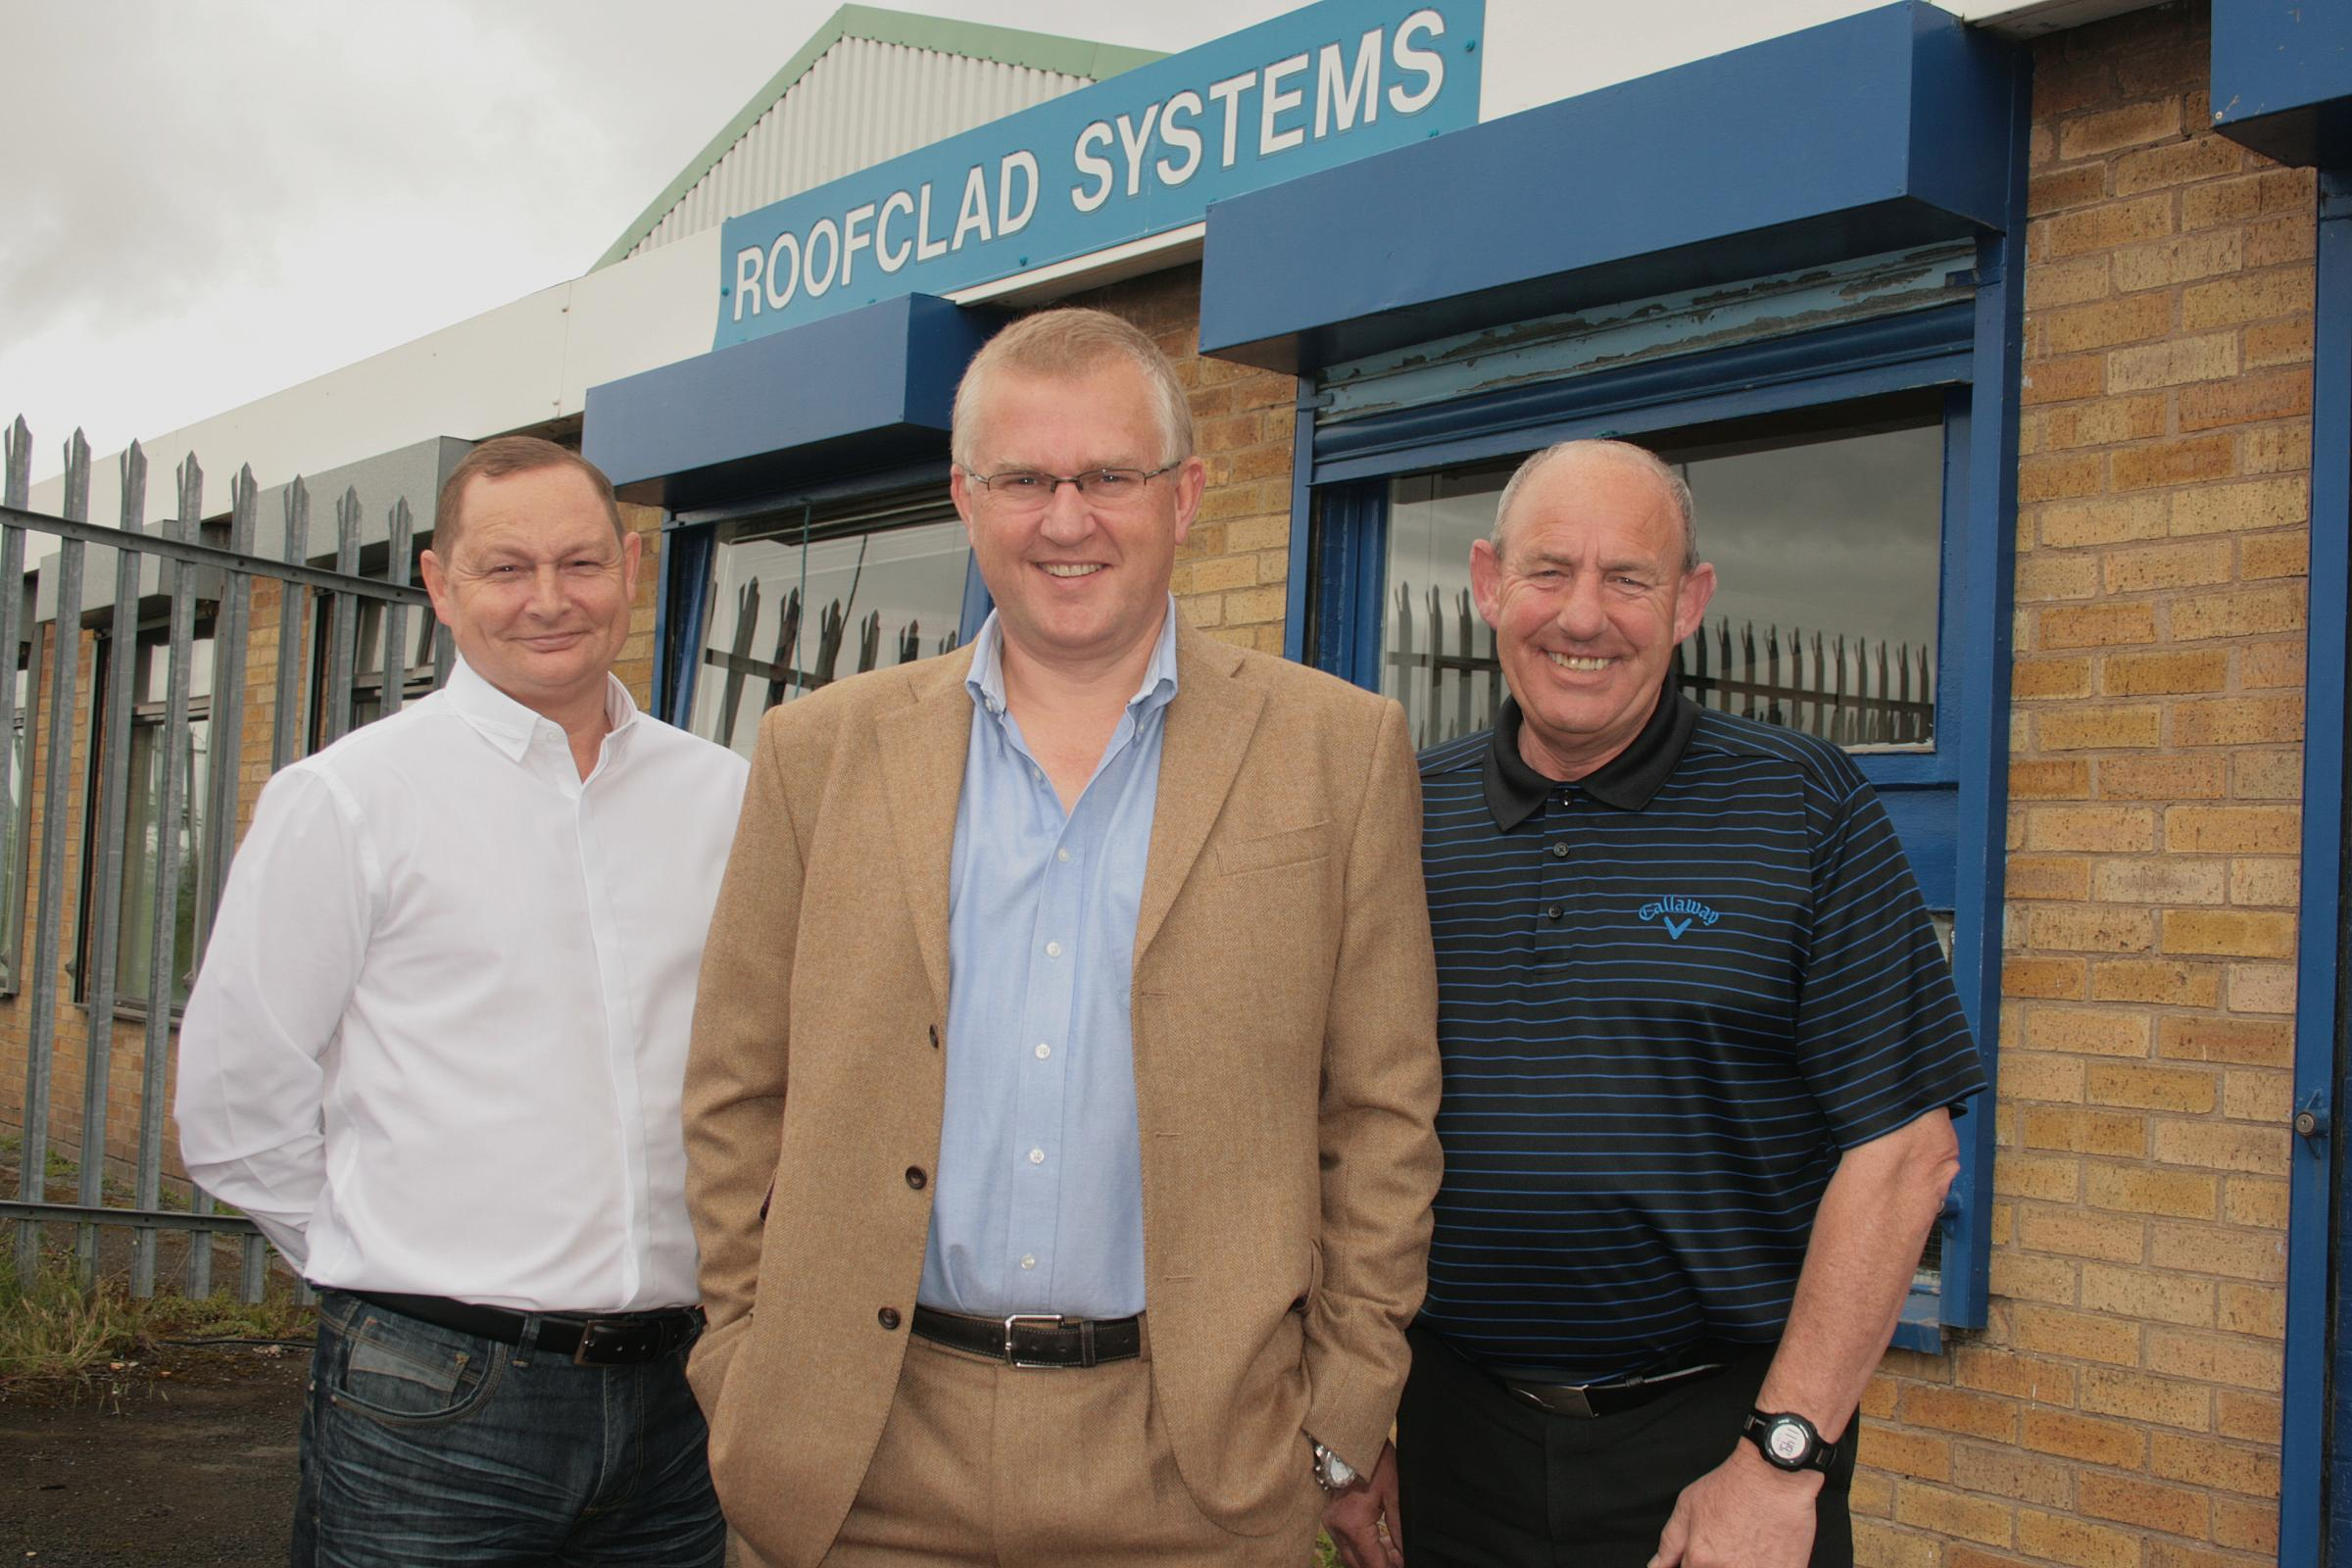 BUSINESS DEAL: Pictured from left to right are Phil Allison, operations director, Dave Tilley and Stewart Openshaw